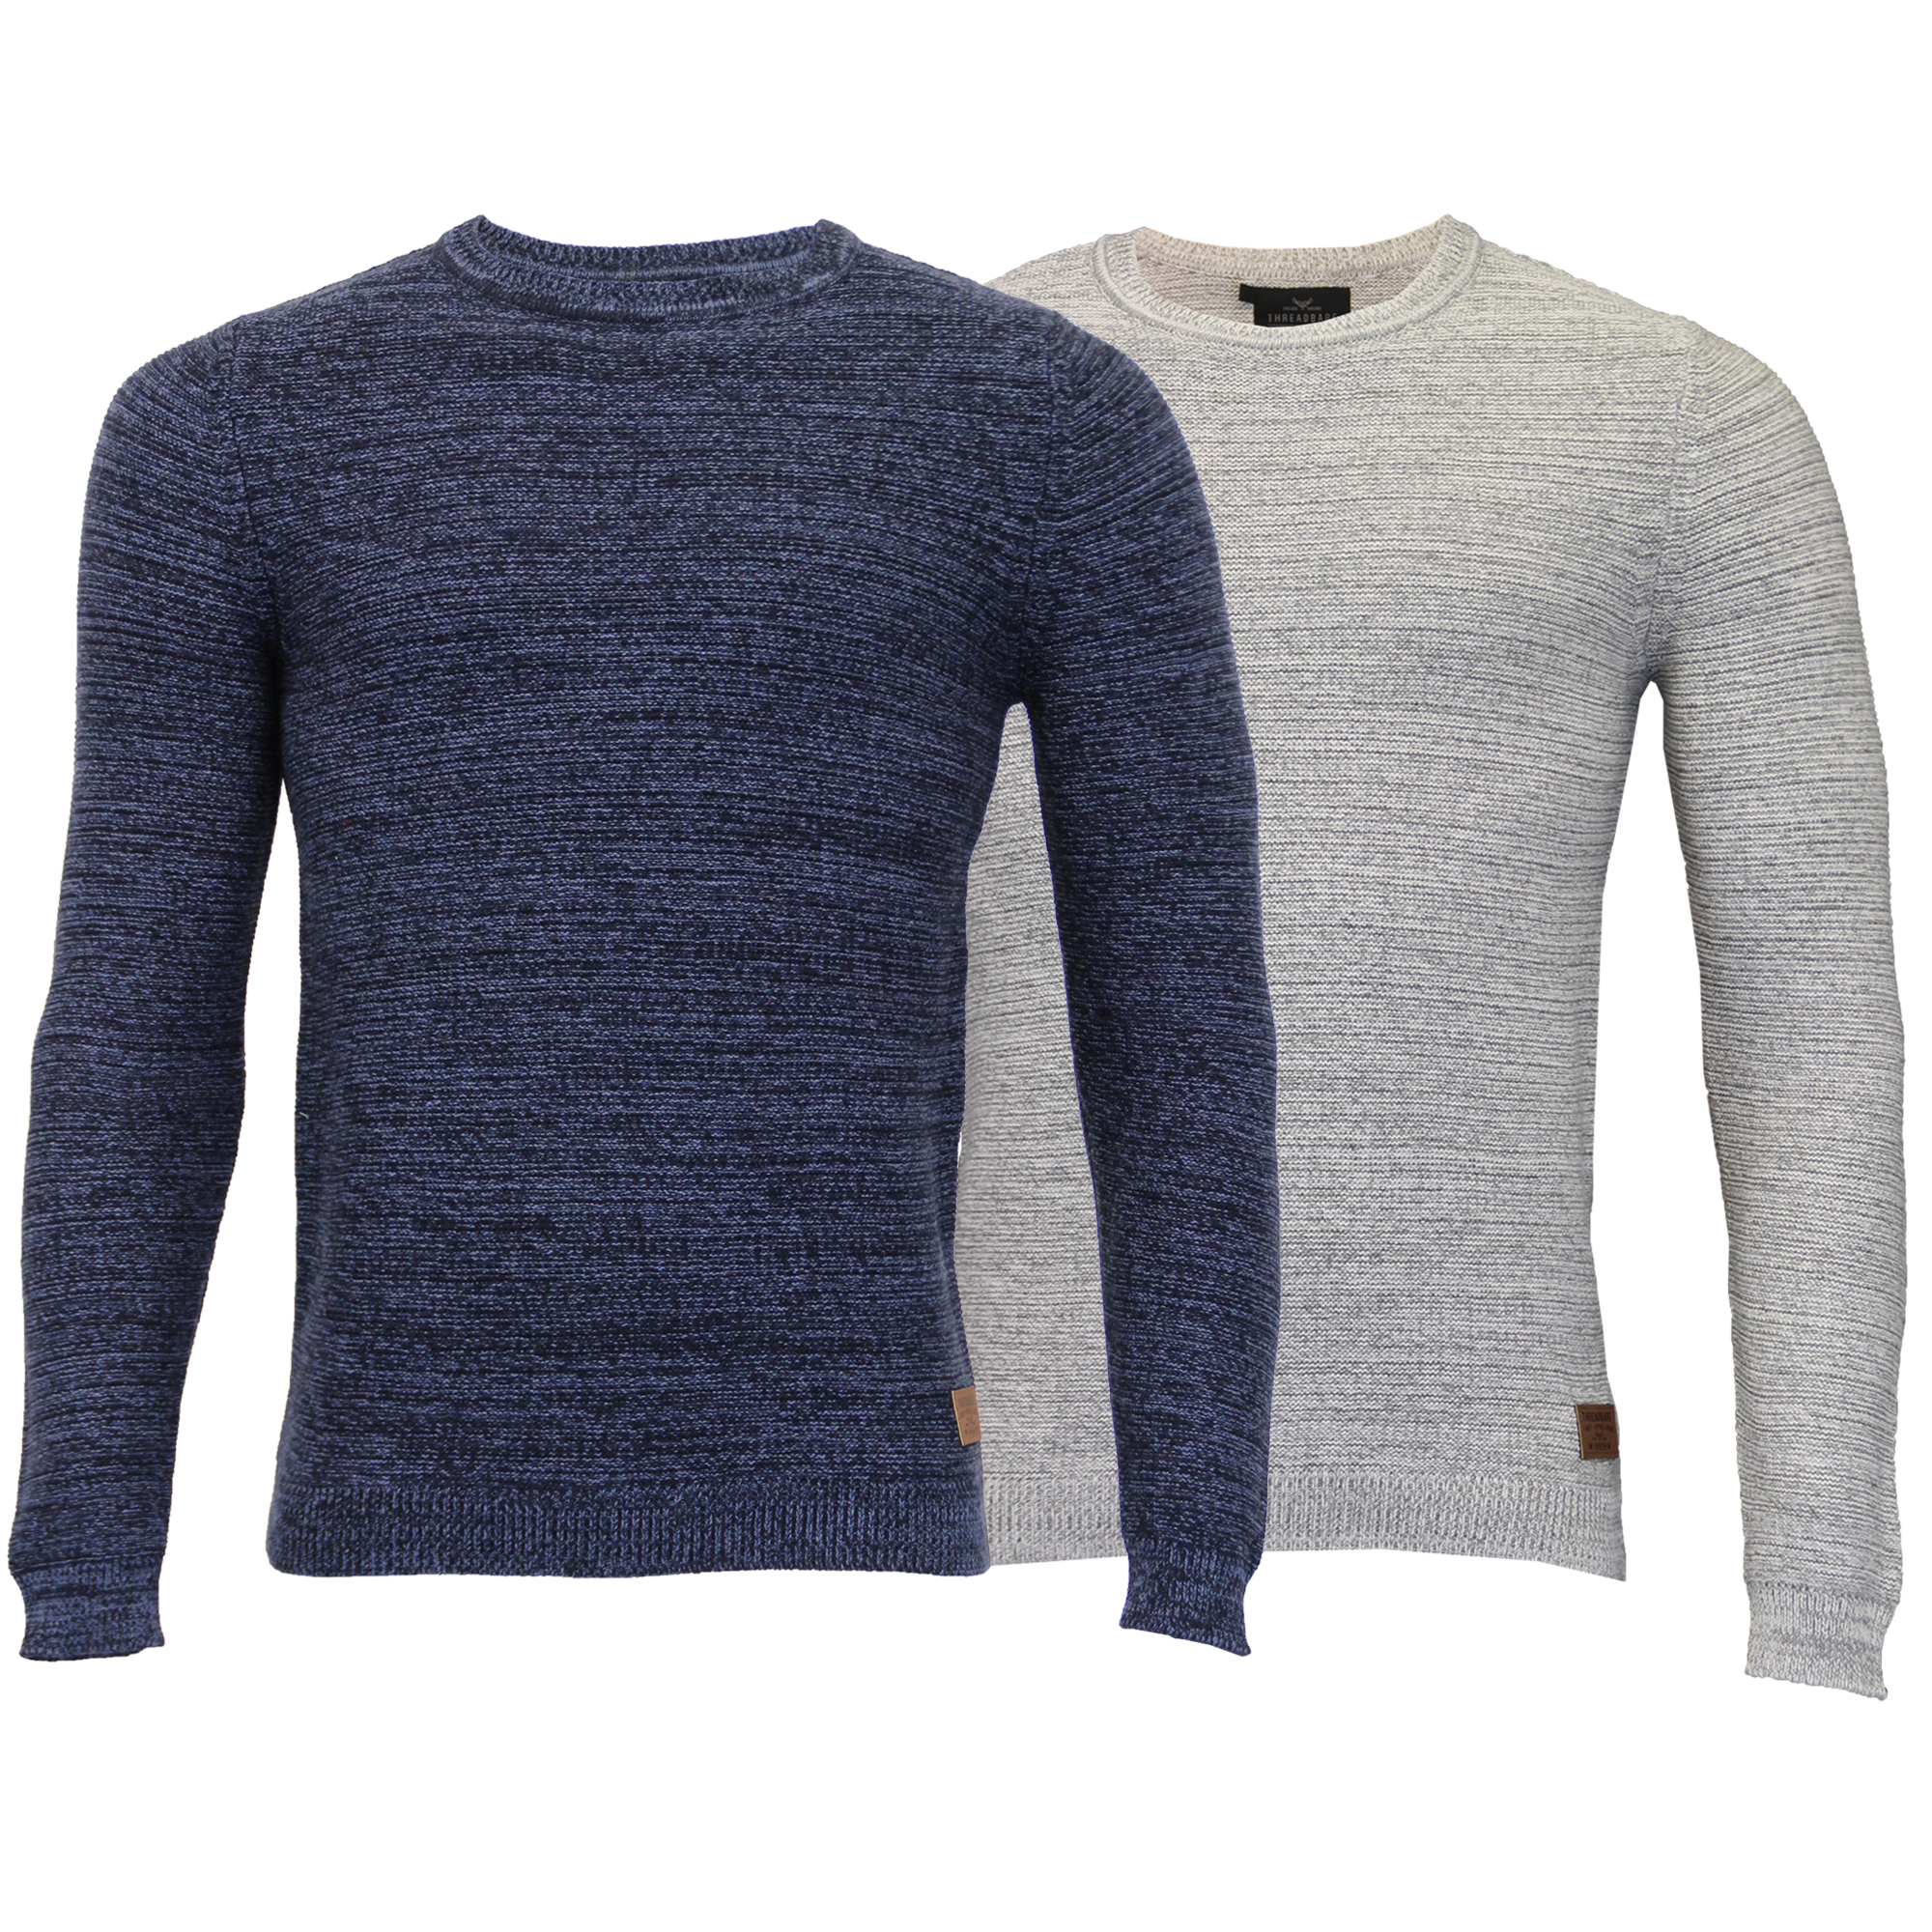 Mens Knitted Jumper Threadbare Sweater Pullover Top Crew Neck Casual Winter New